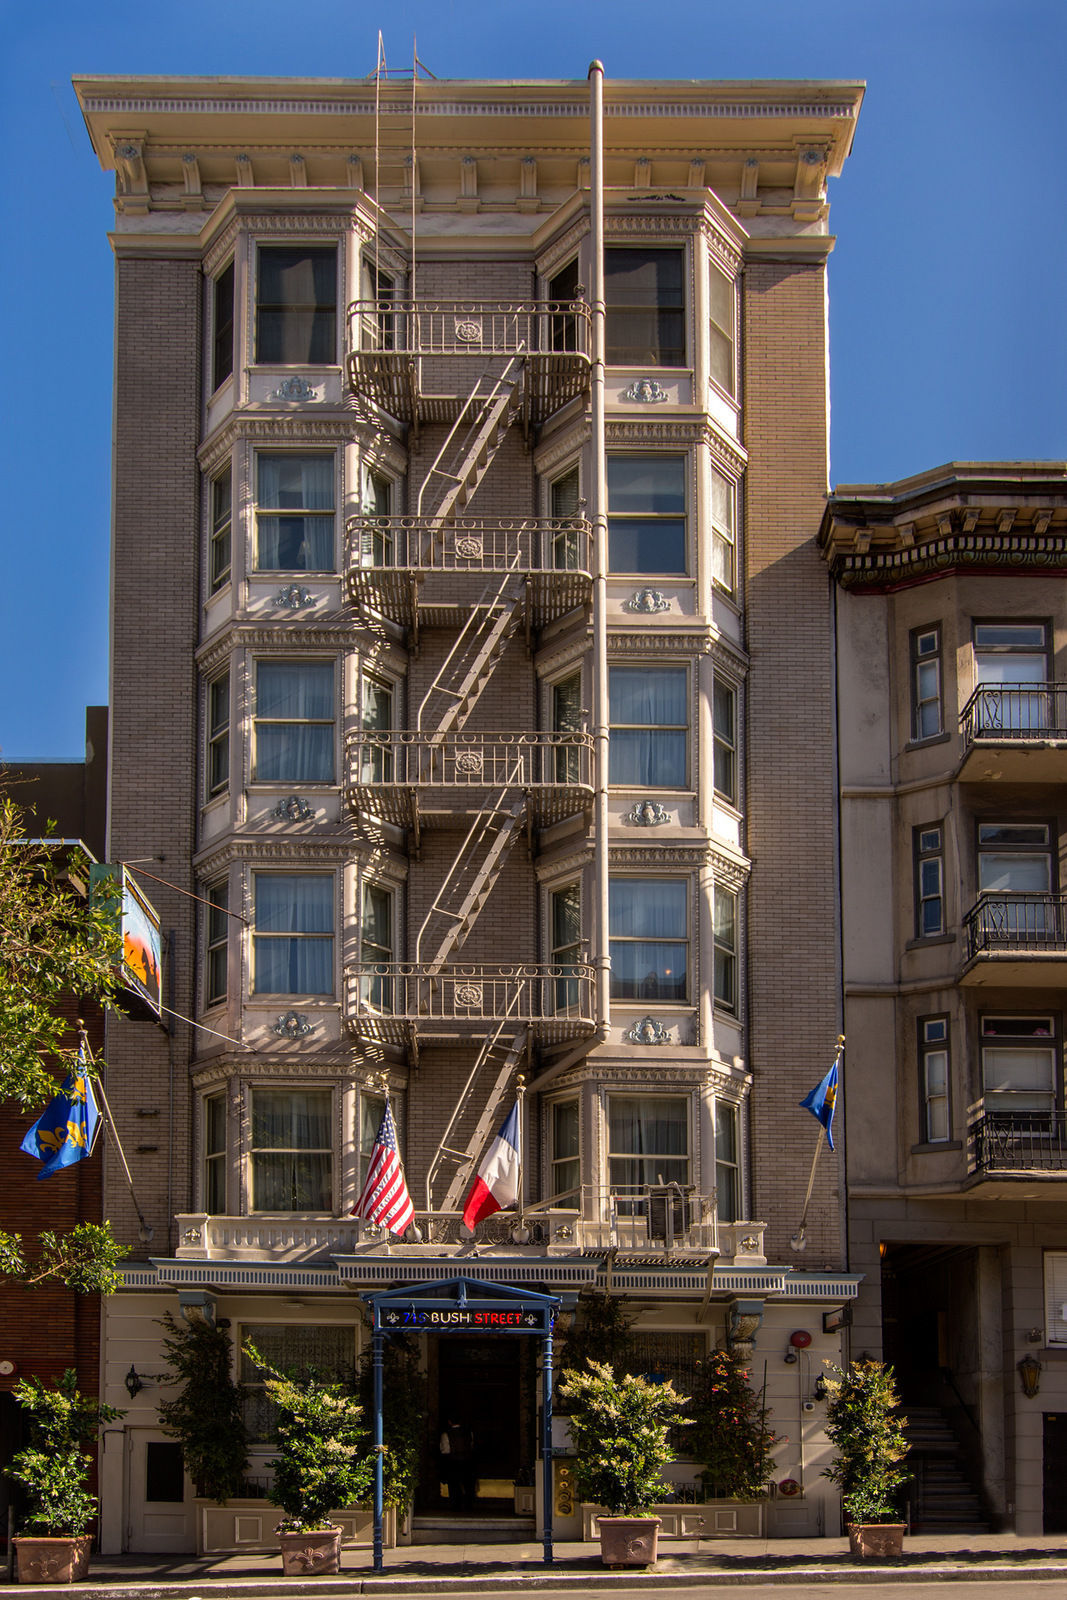 Cornell Hotel De France A French Boutique In The Heart Of San Francisco